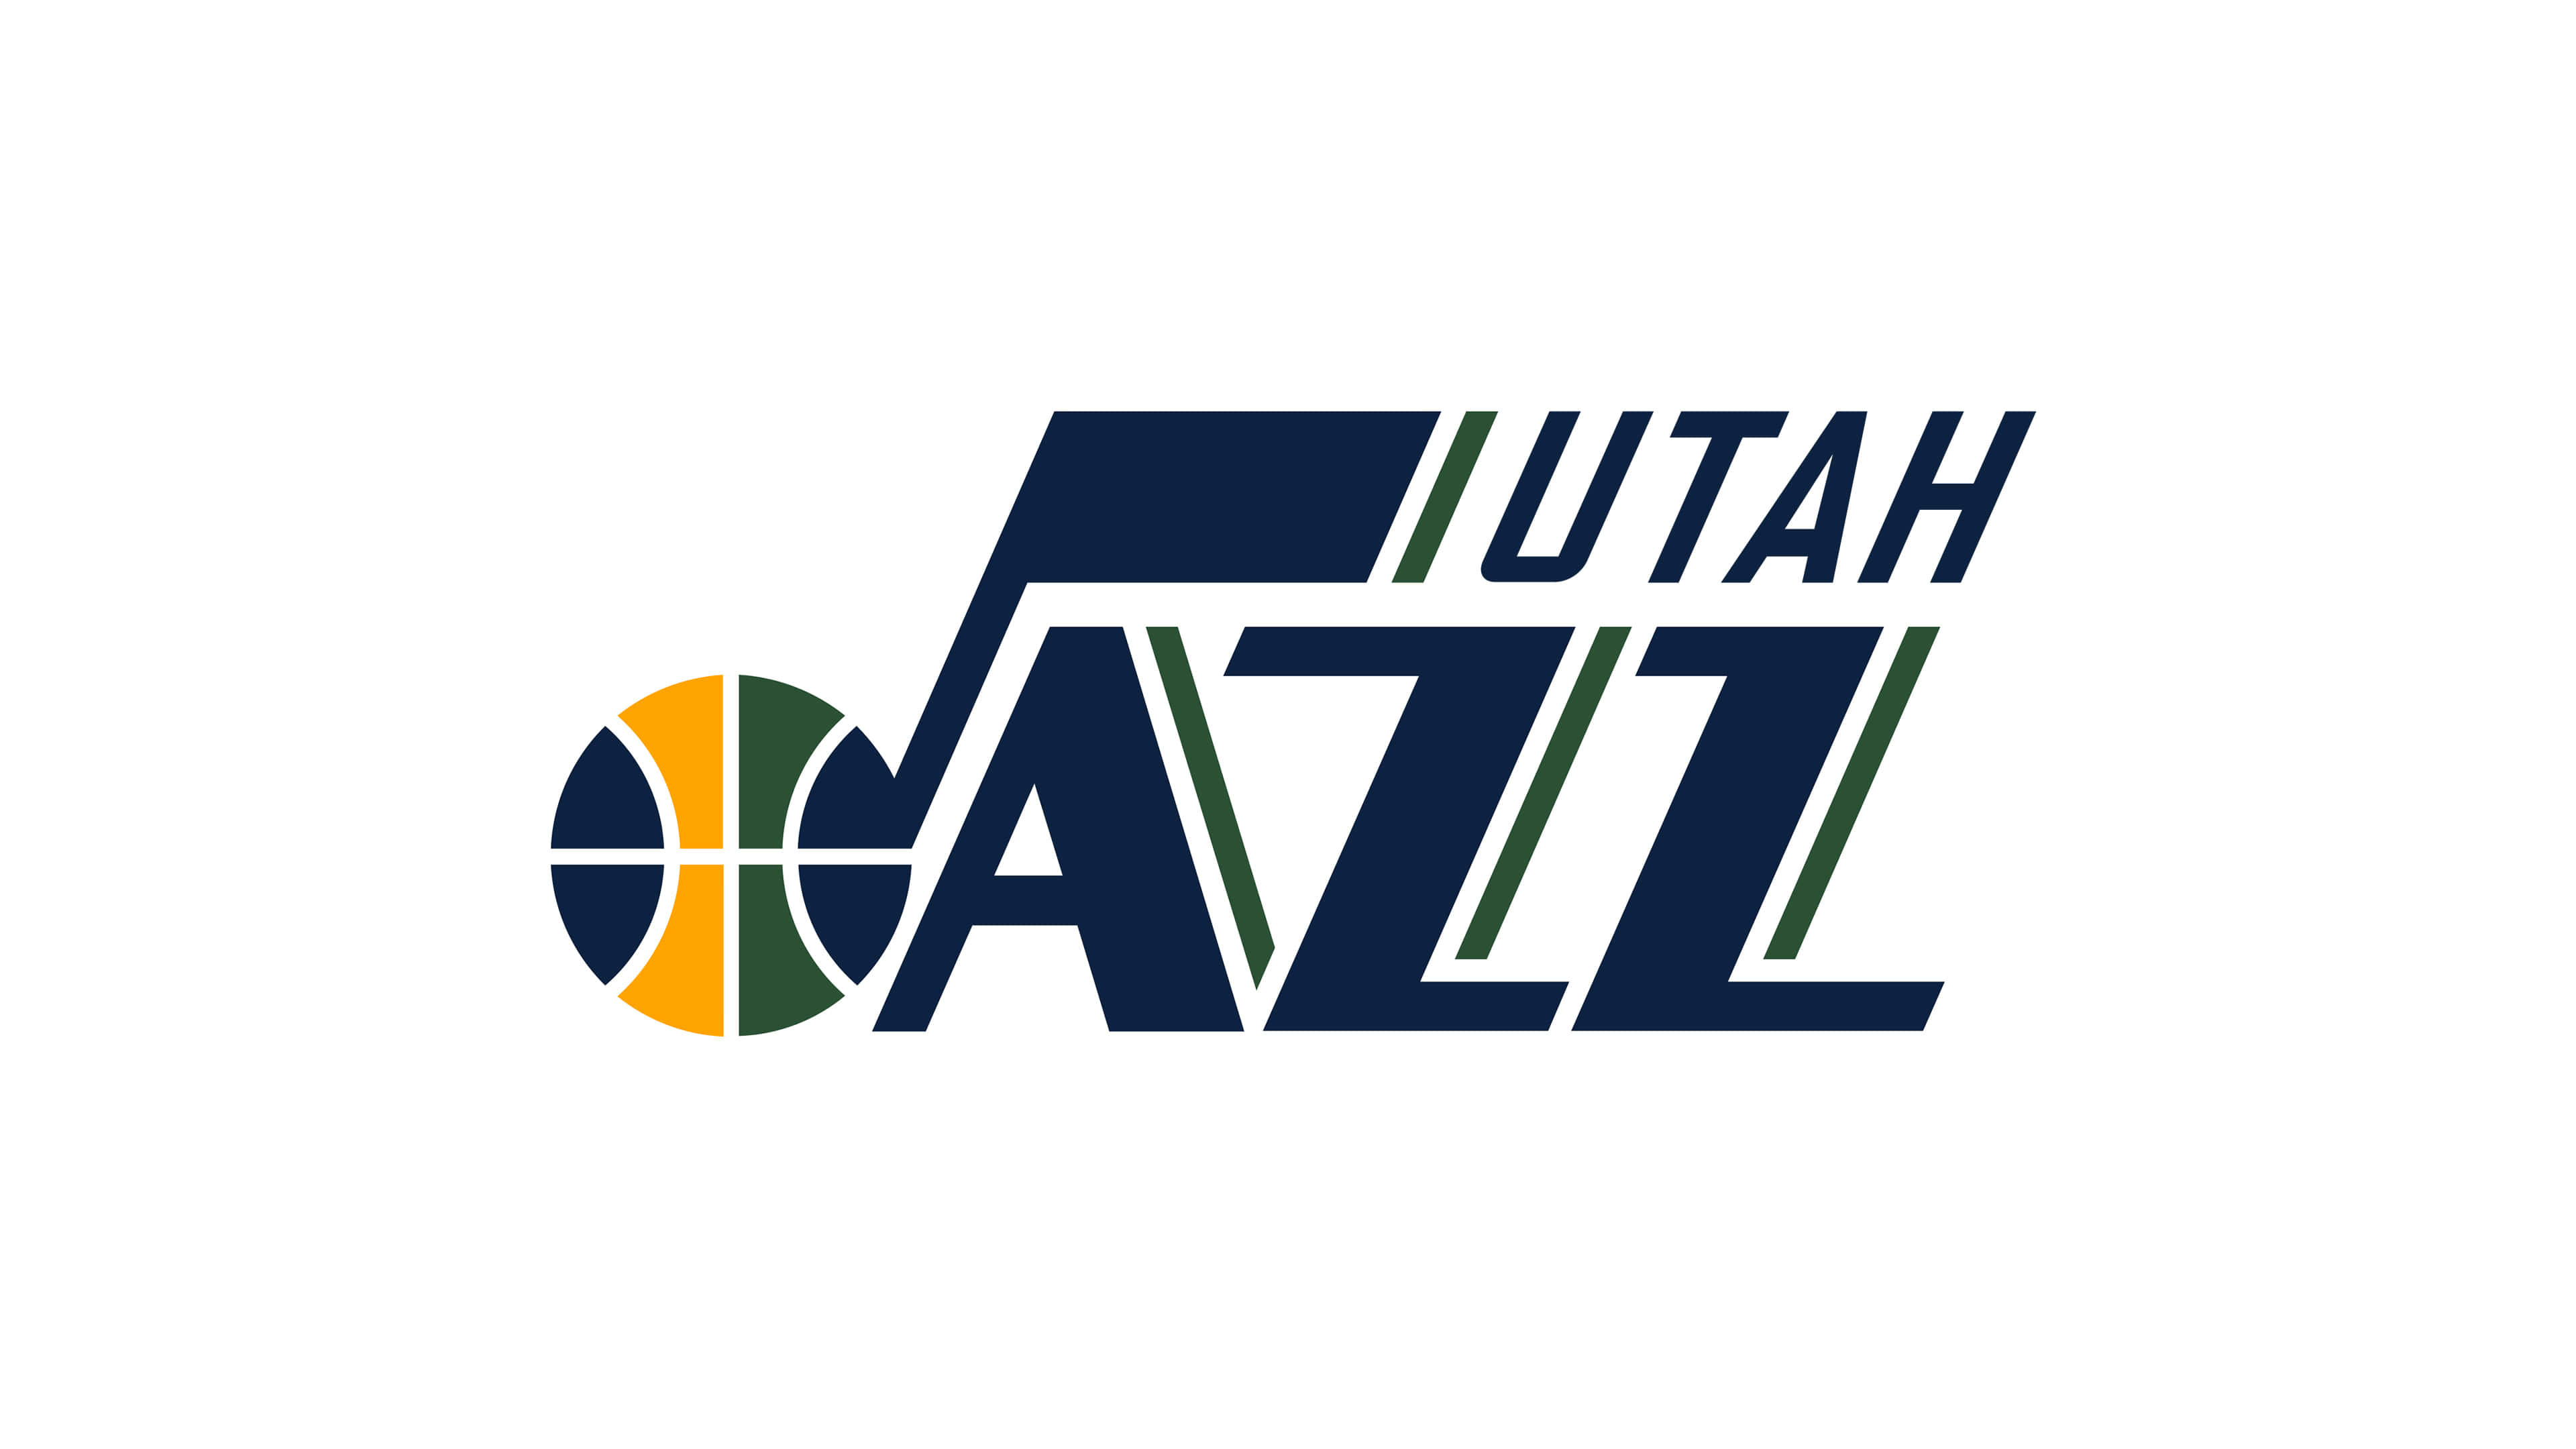 utah jazz nba logo uhd 4k wallpaper